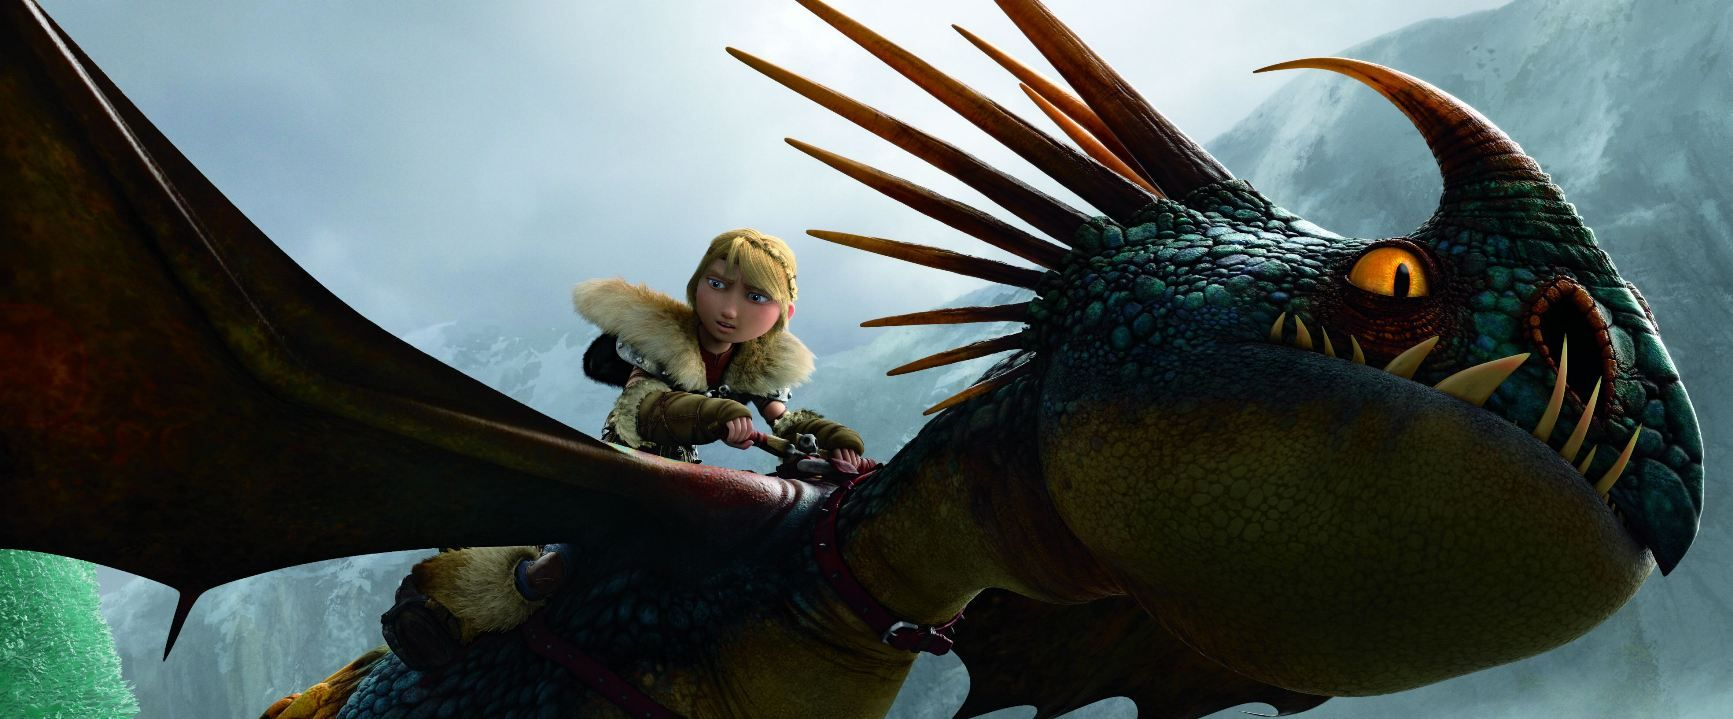 How to Train Your Dragon: The Hidden World How to Train Pictures of the dragons in how to train your dragon